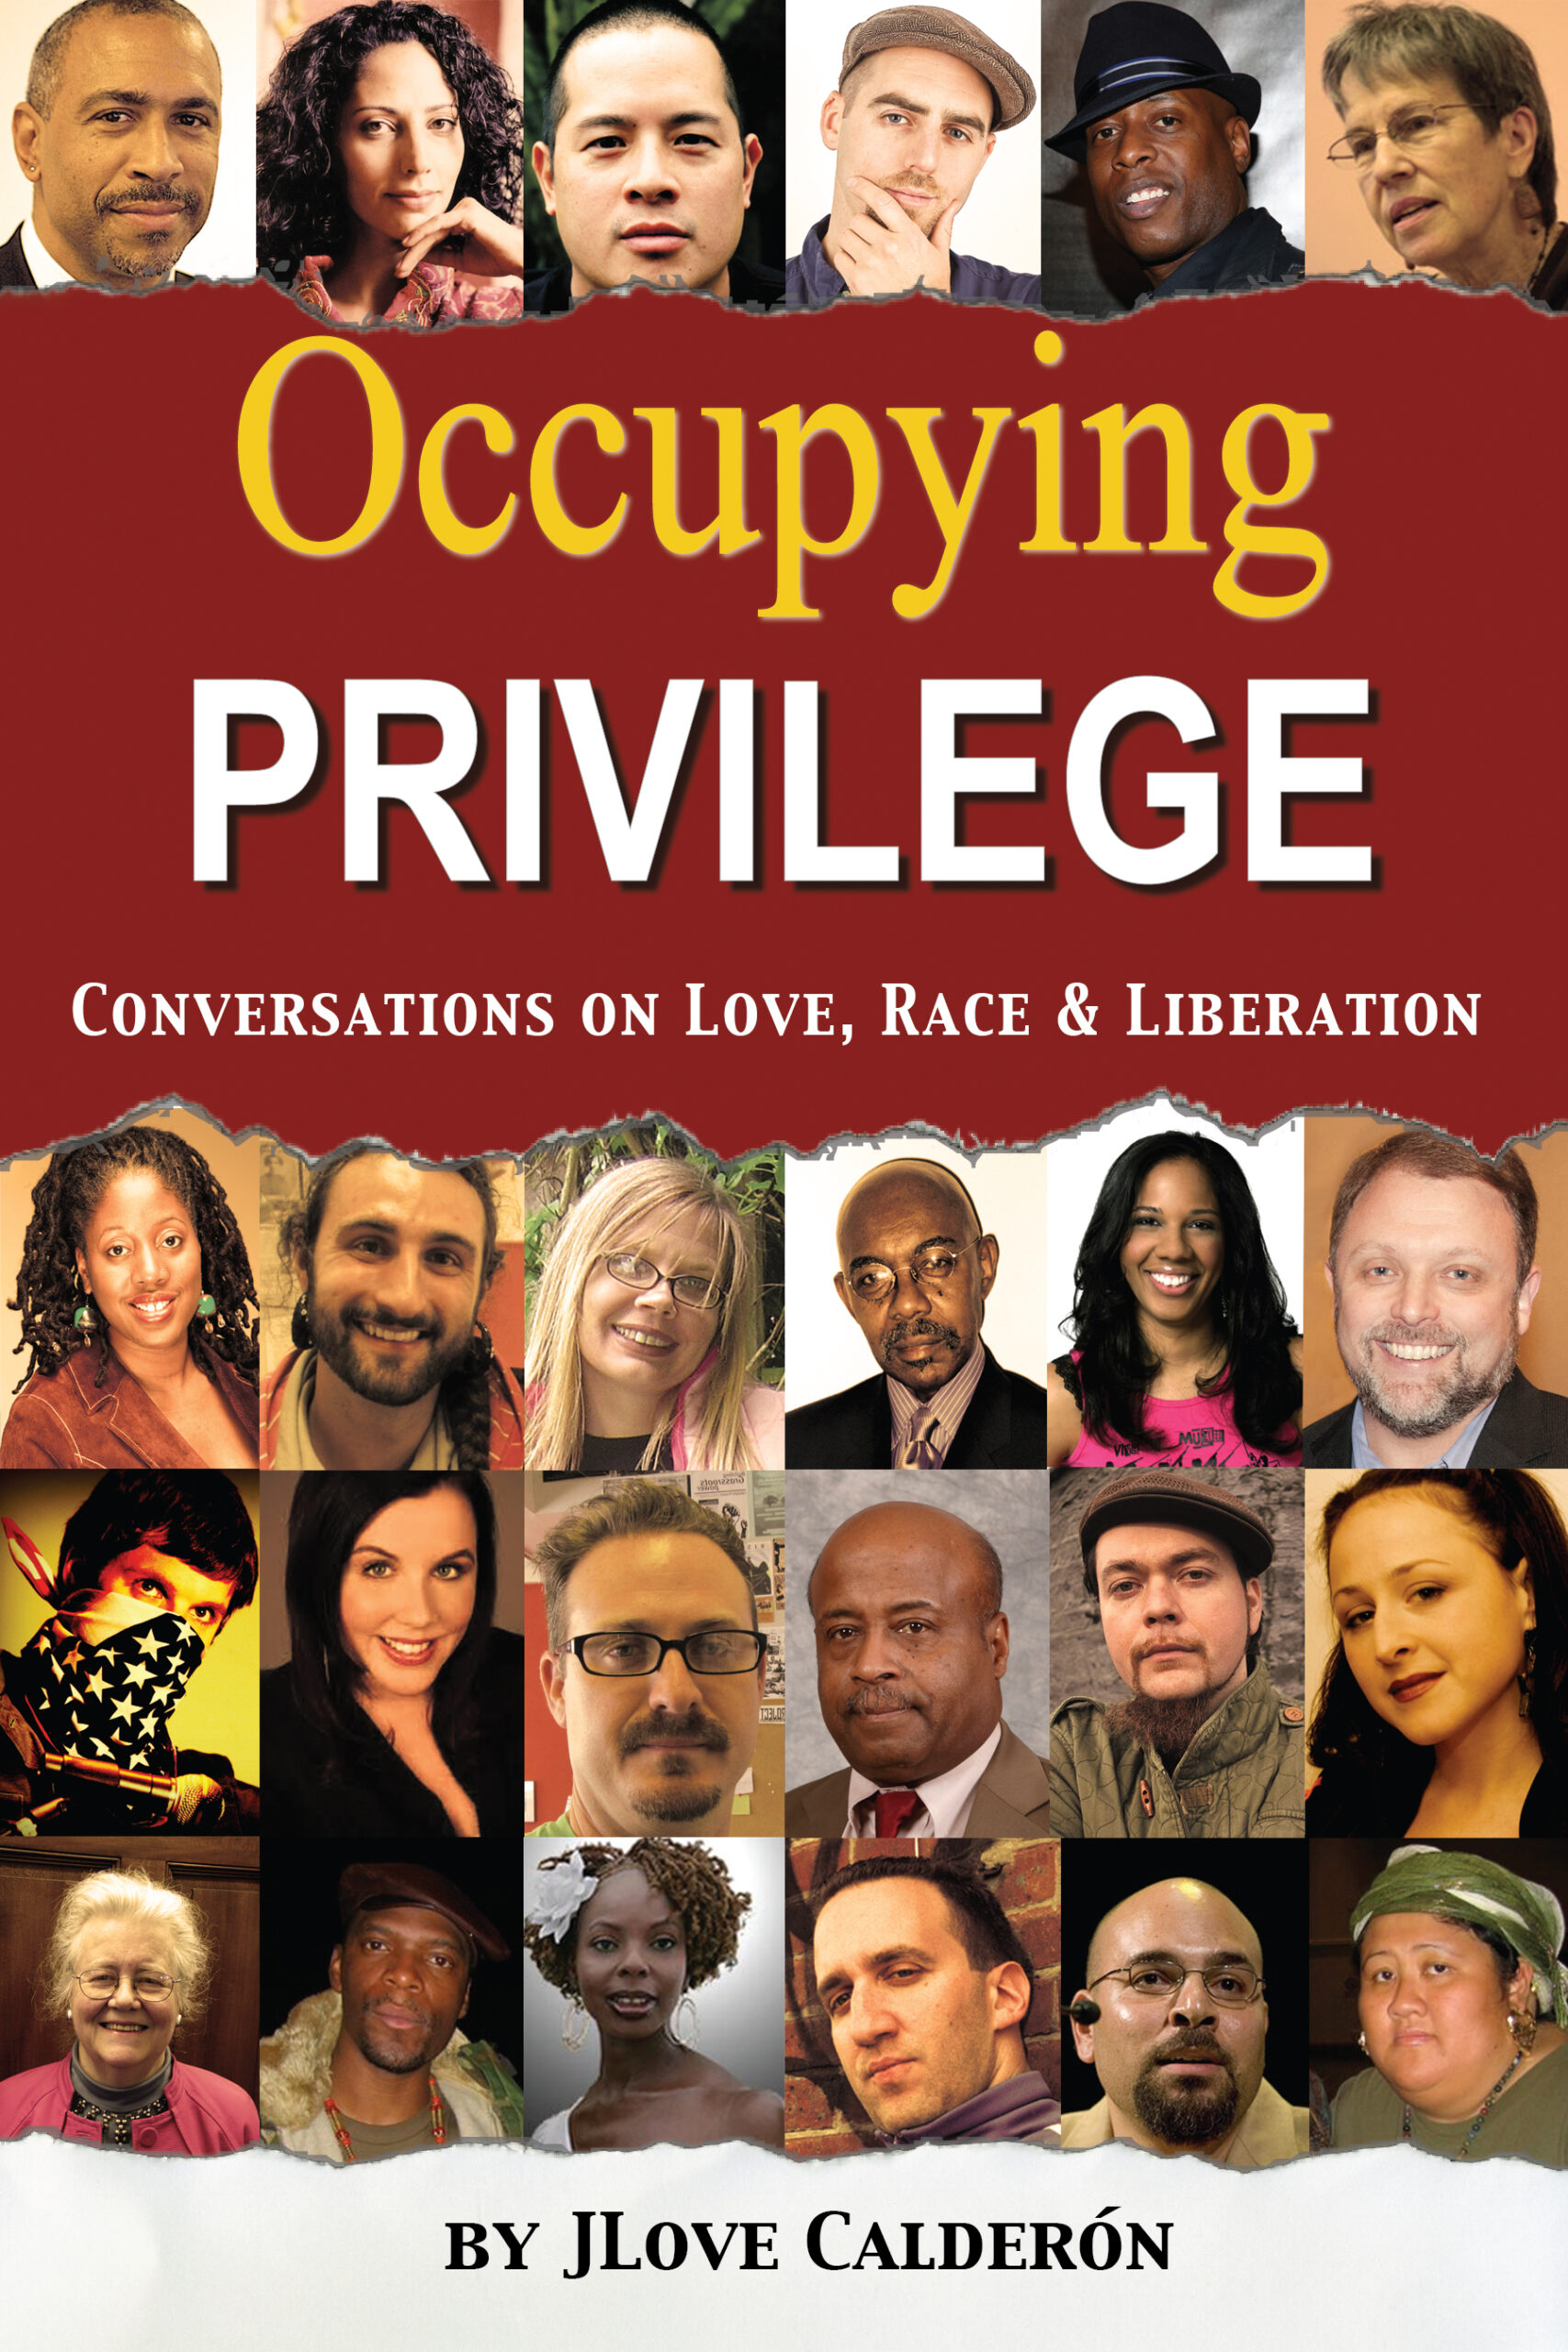 2012_AKILAWpress_JLove_OccupyingPrivilege_IMG